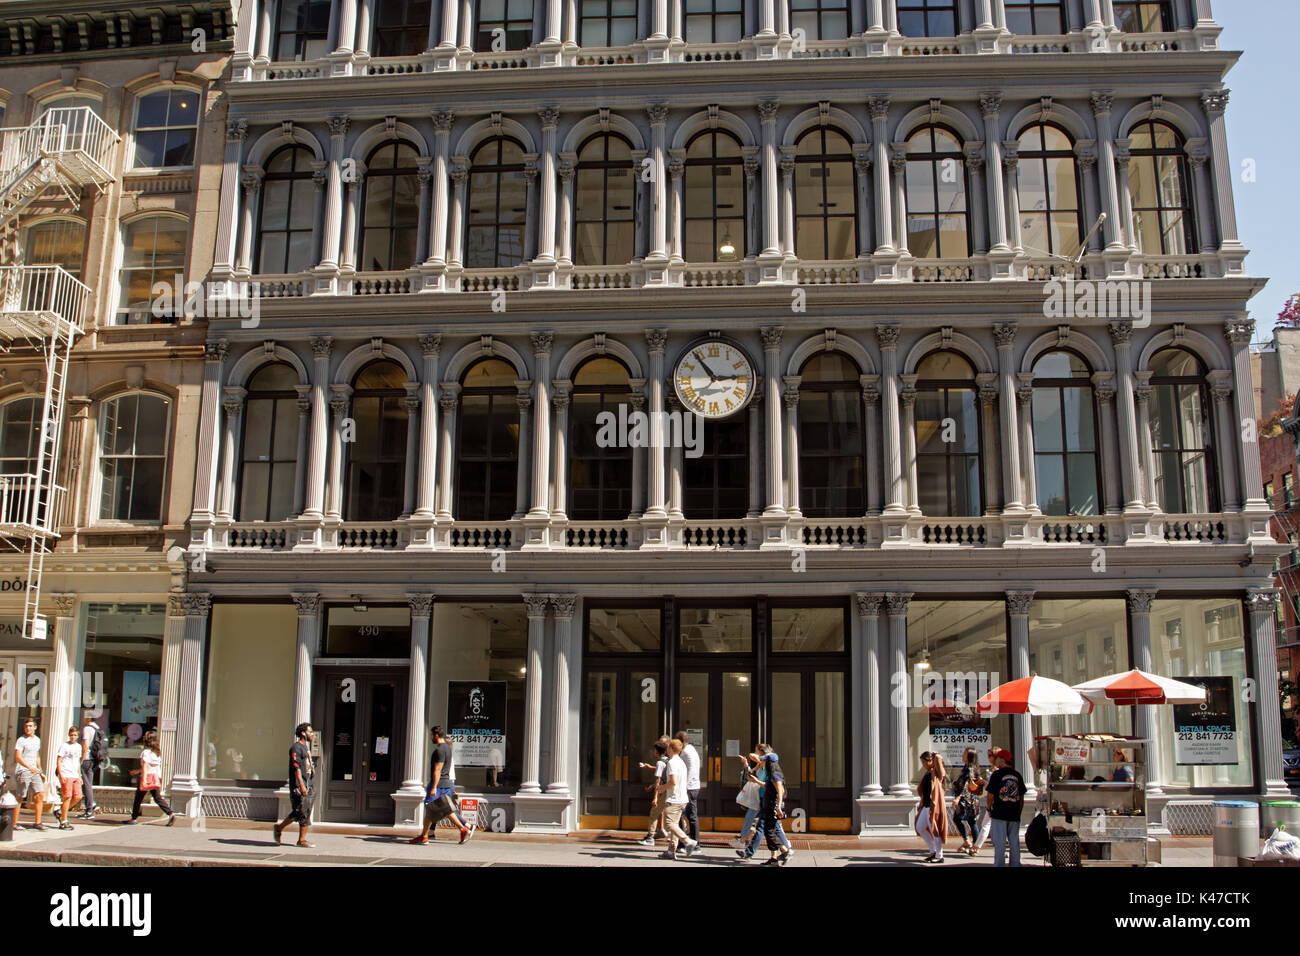 The landmarked, cast iron building on Broadway at Broome Street in Manhattan was designed in 1857 as a store for E.V. Haughwout & Co. Abraham Lincoln' - Stock Image